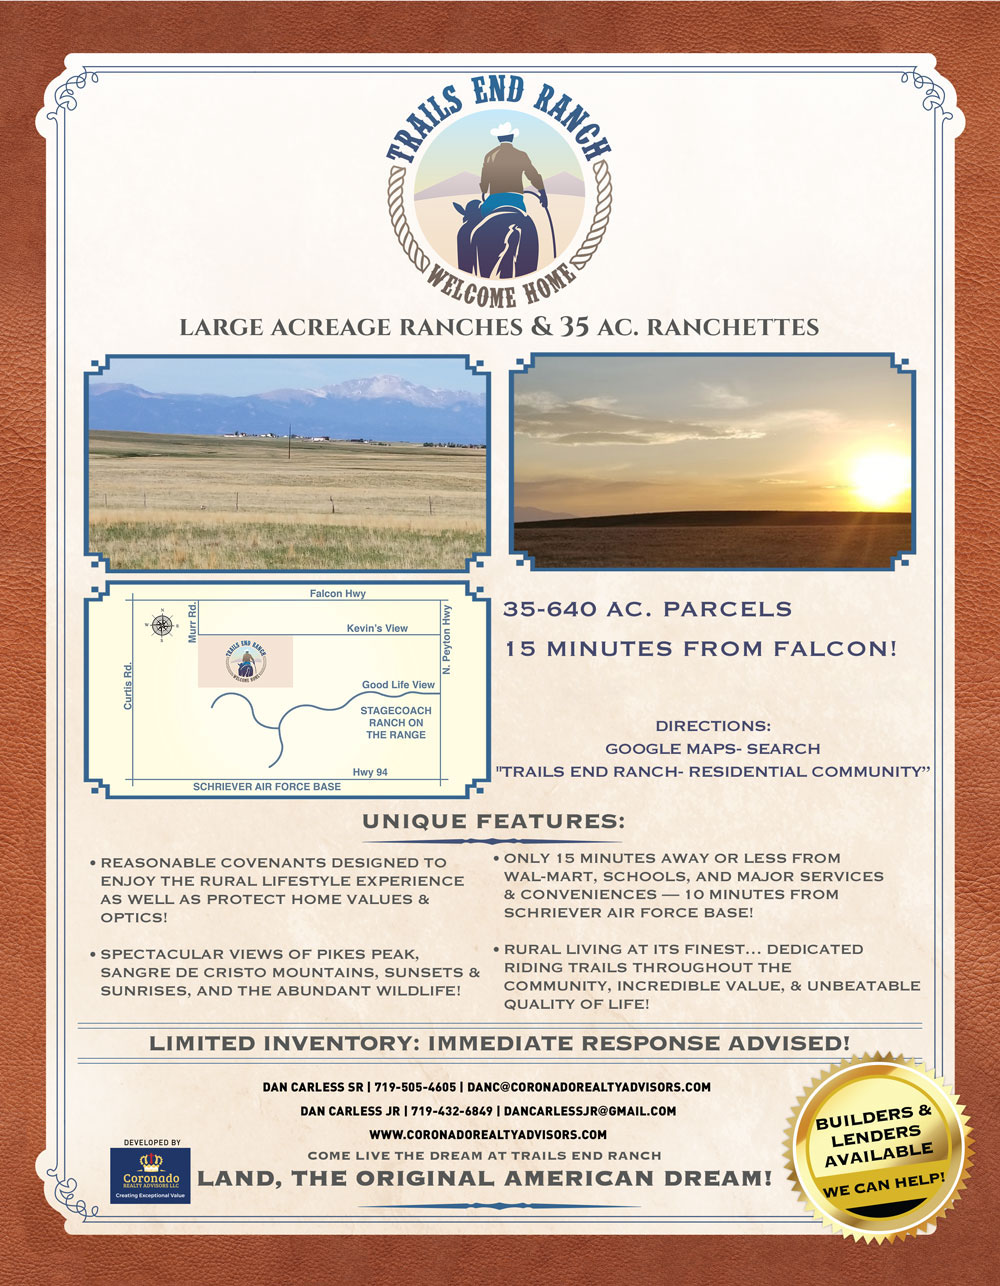 TE-Trails-End-Ranch-PNG-Format-Marketing-FlyerFW-